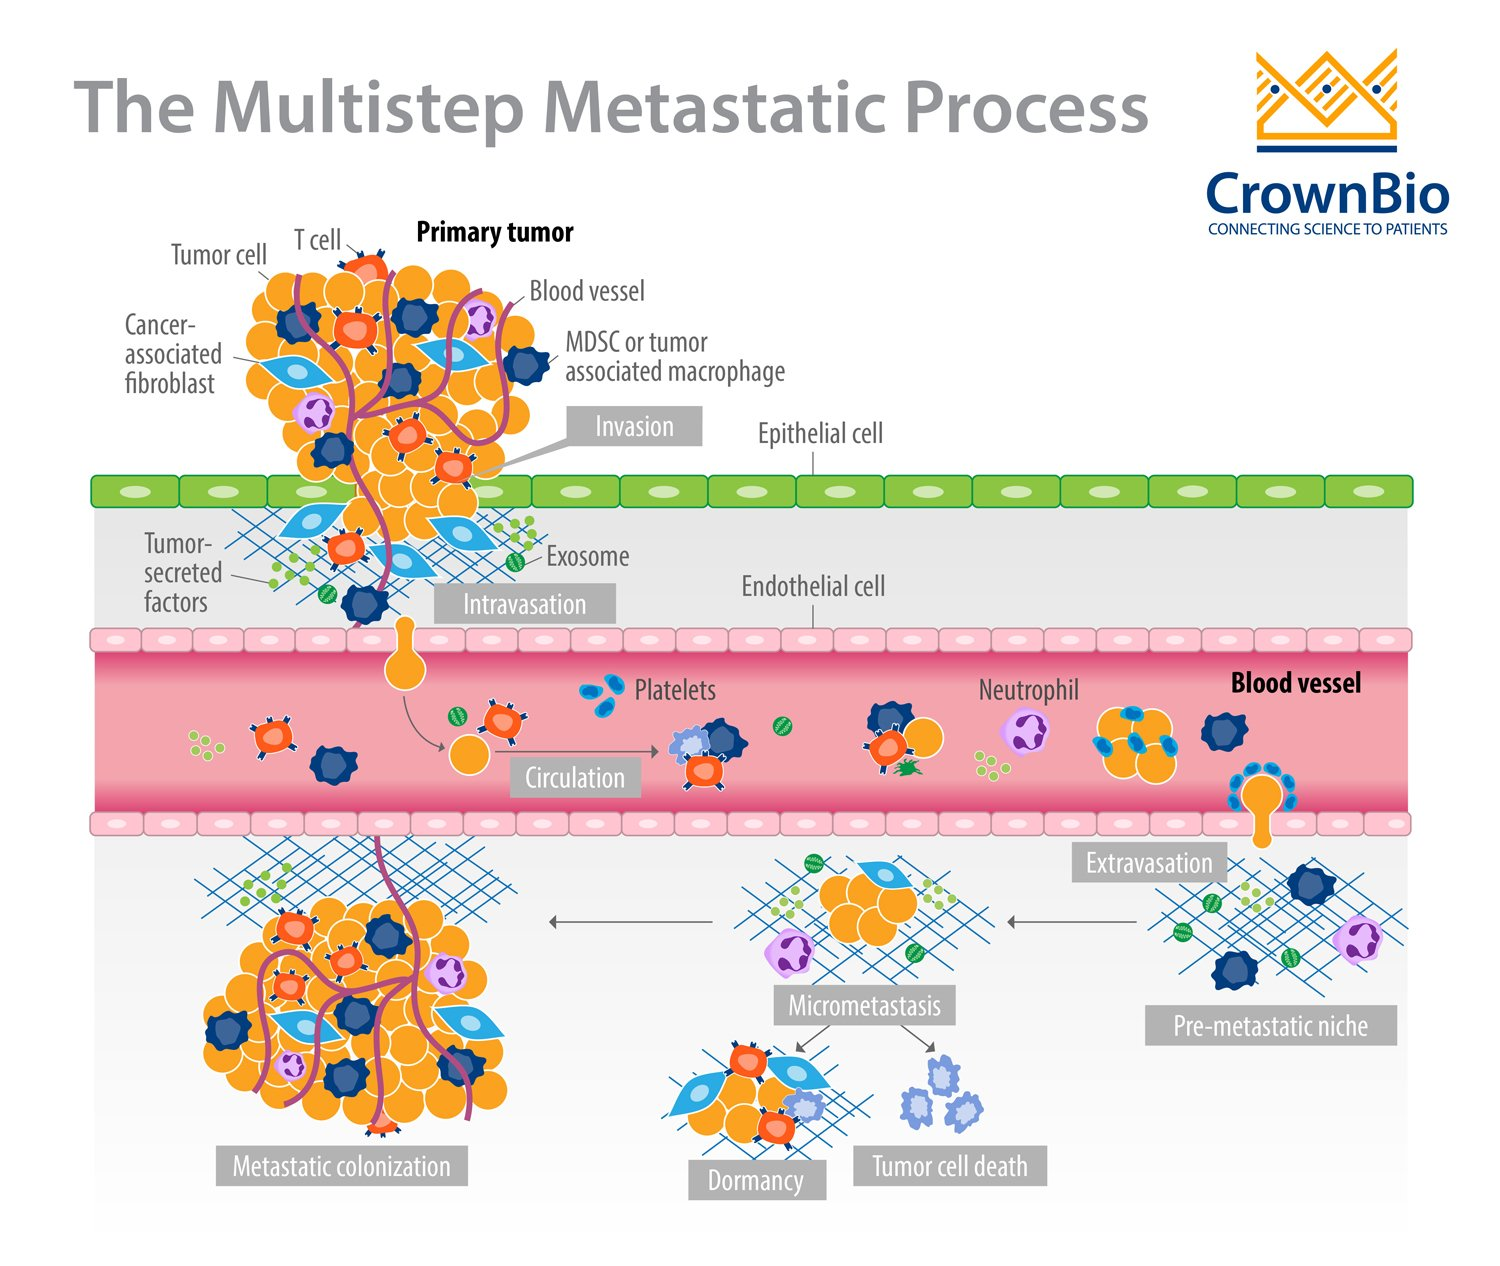 Recapitulating Clinical Metastatic Events in Preclinical Mouse Models